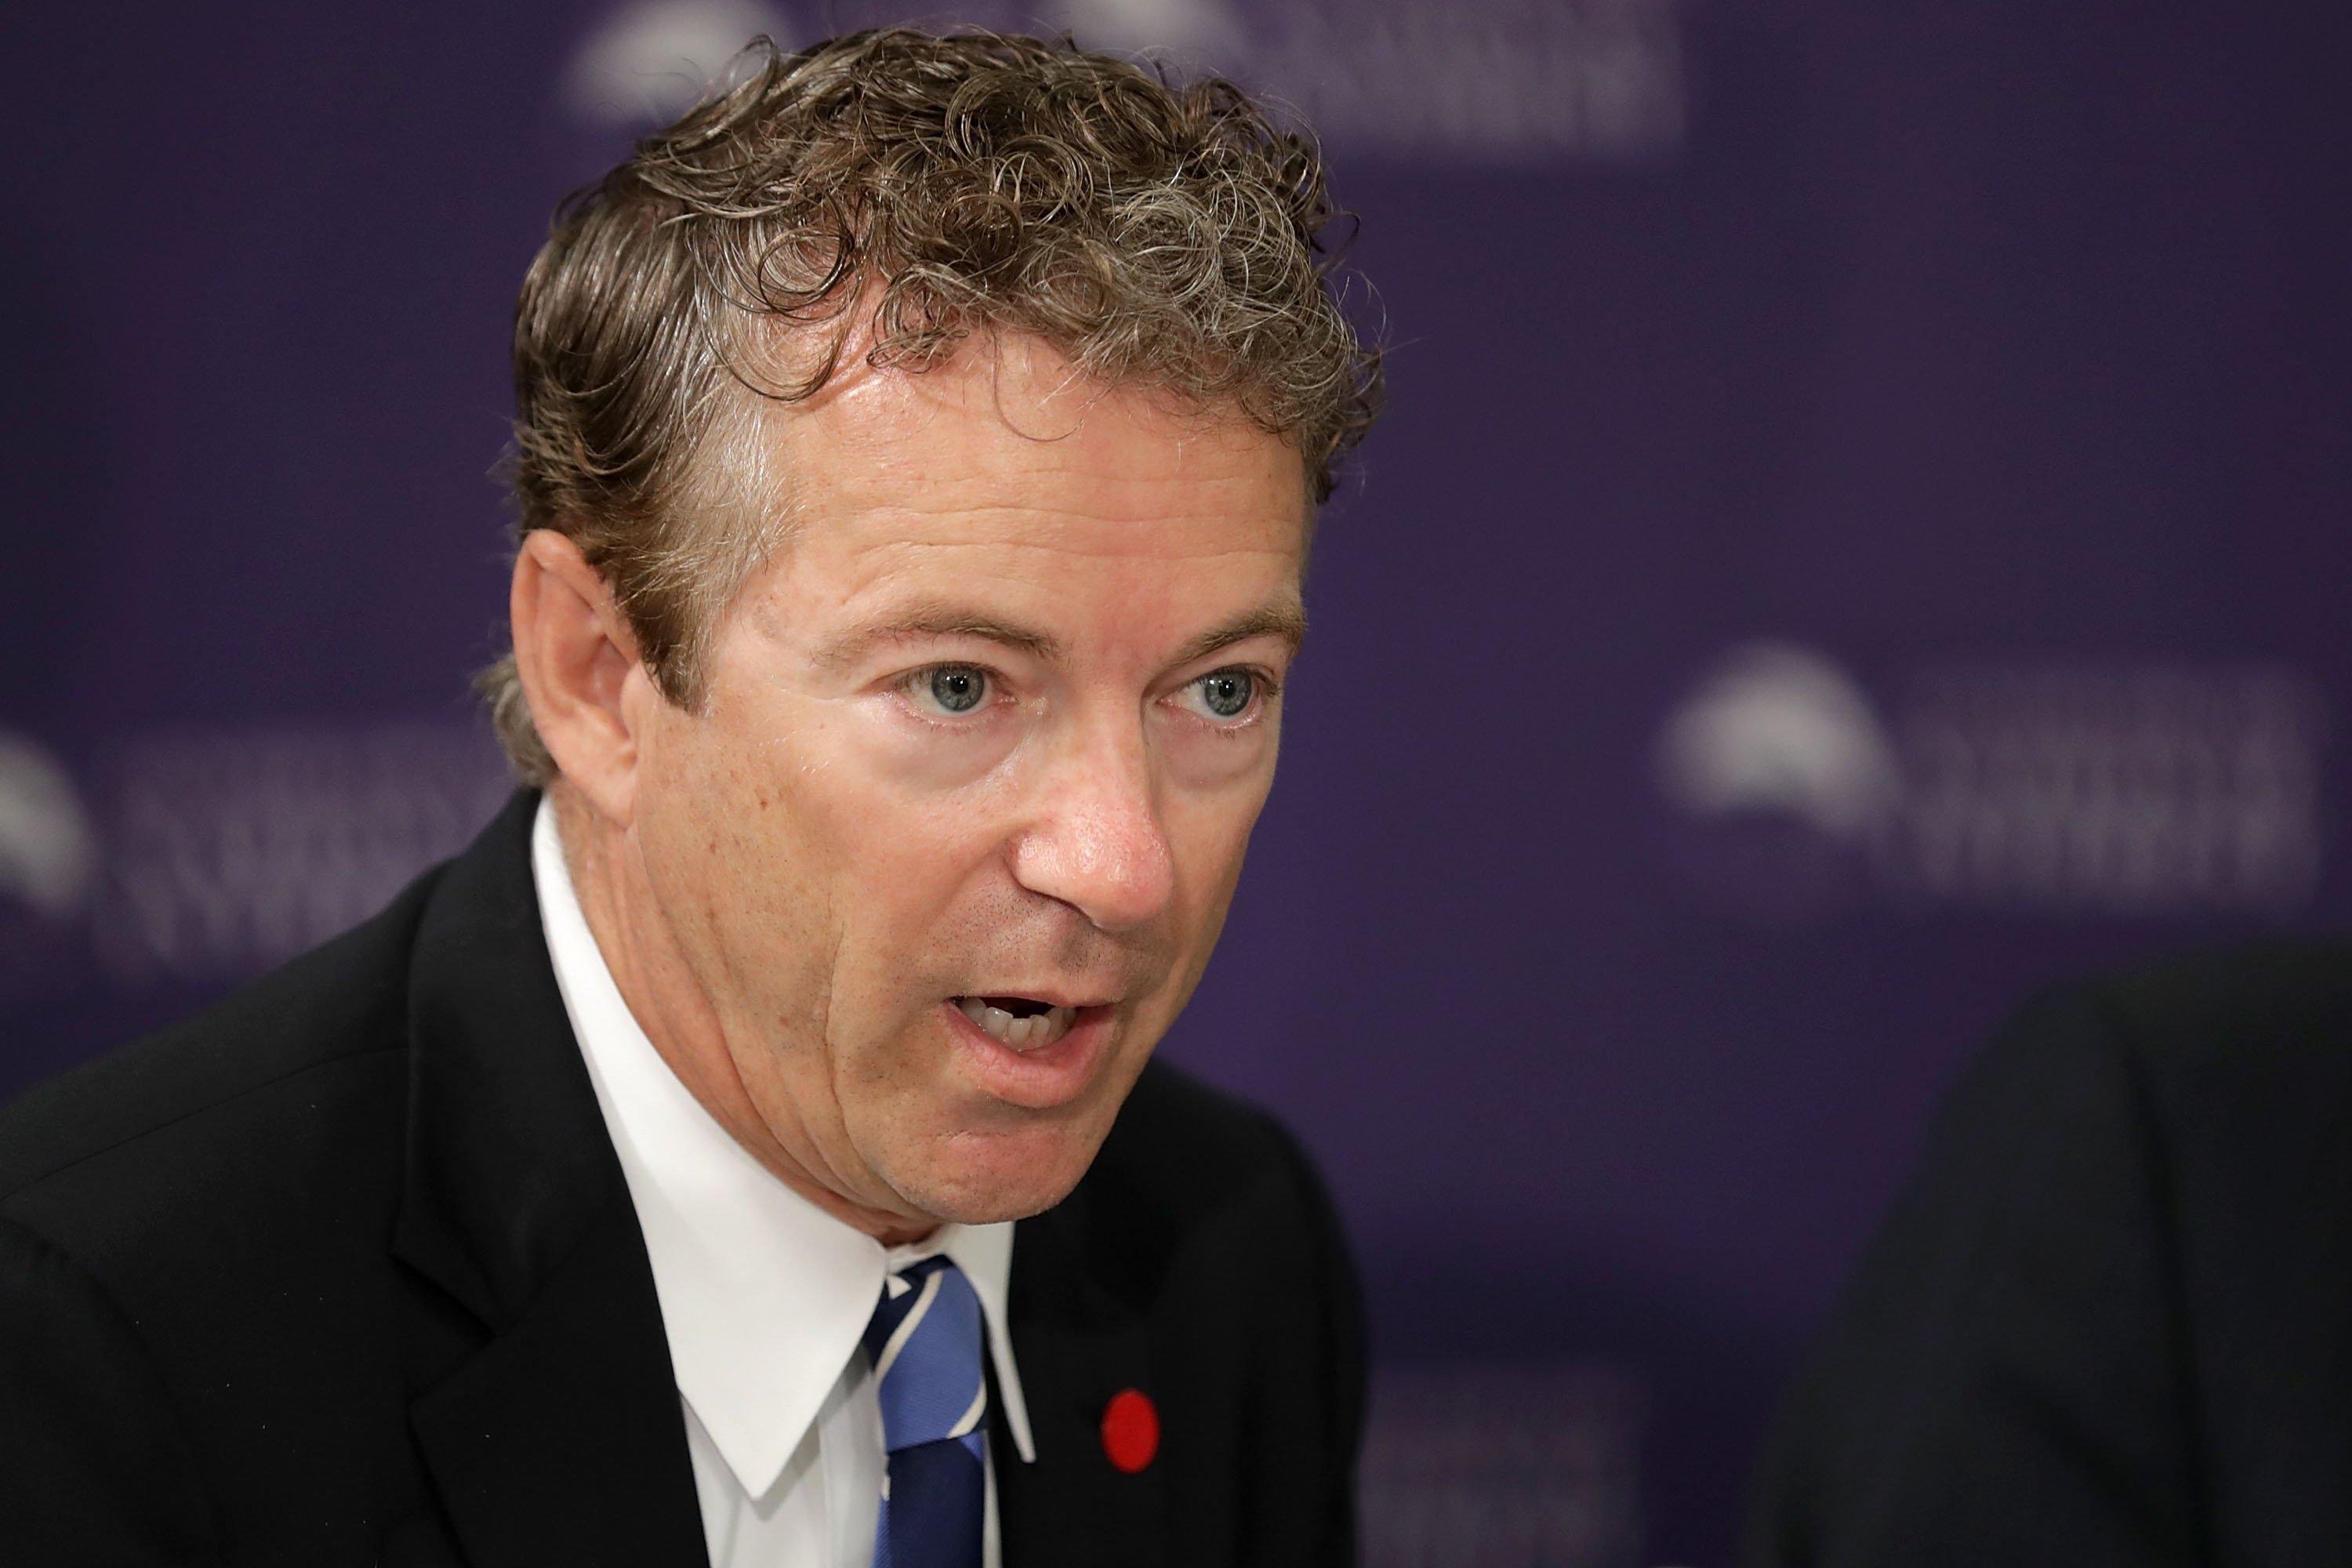 Rand Paul Attacker Pleads Guilty Heres The Prison Sentence Prosecutors Are Pursuing